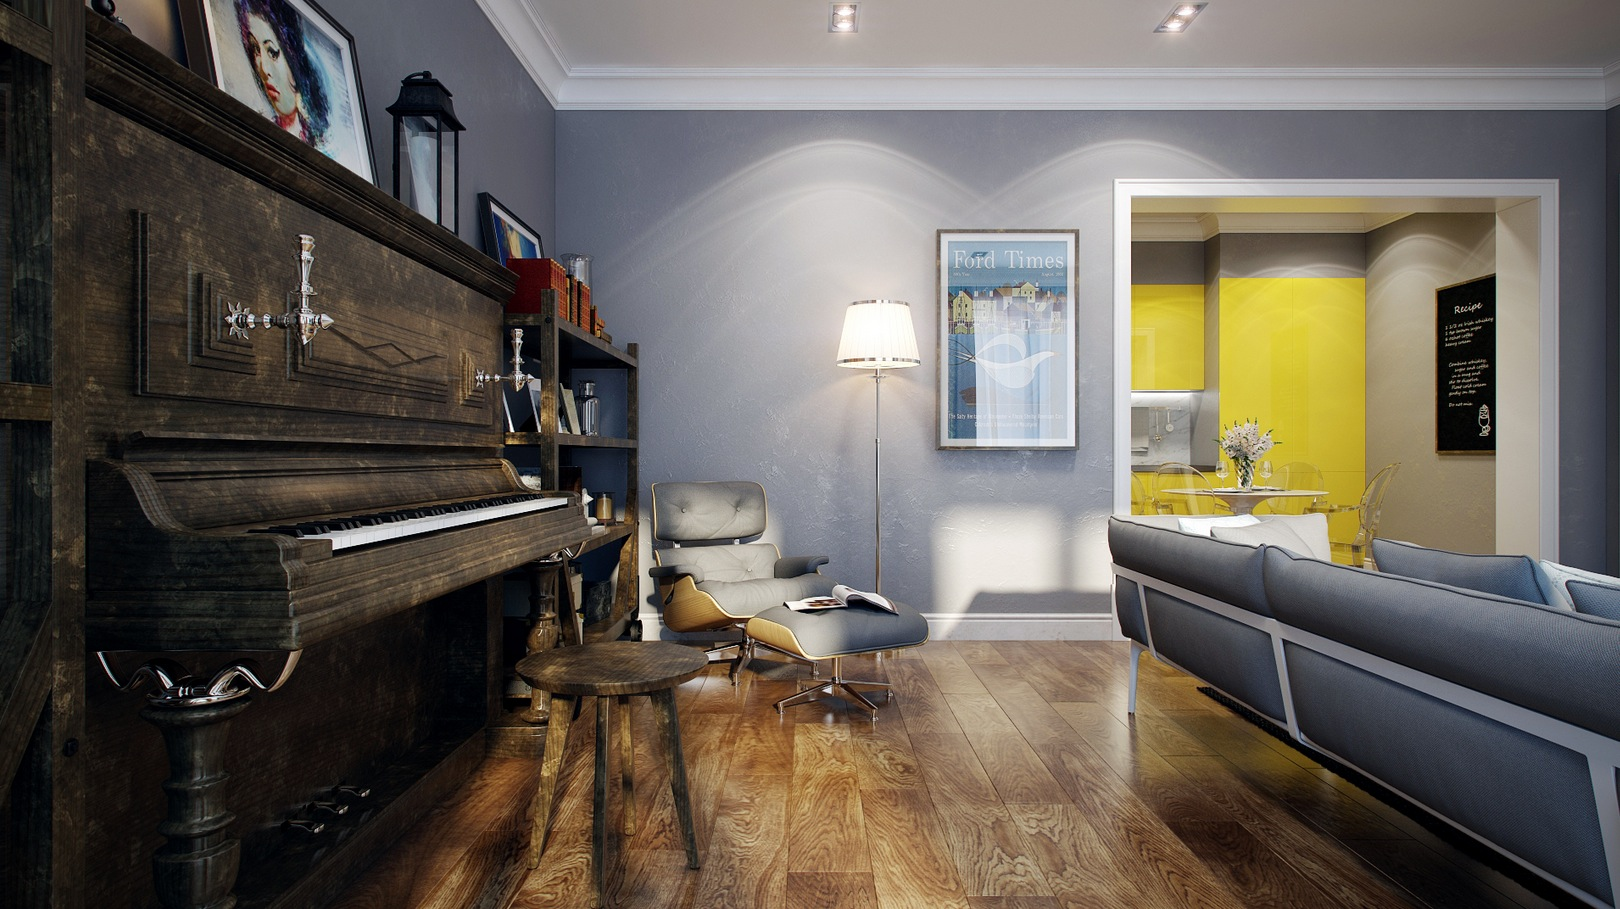 Wood Flooring - Striking home visualizations by pavel vetrov